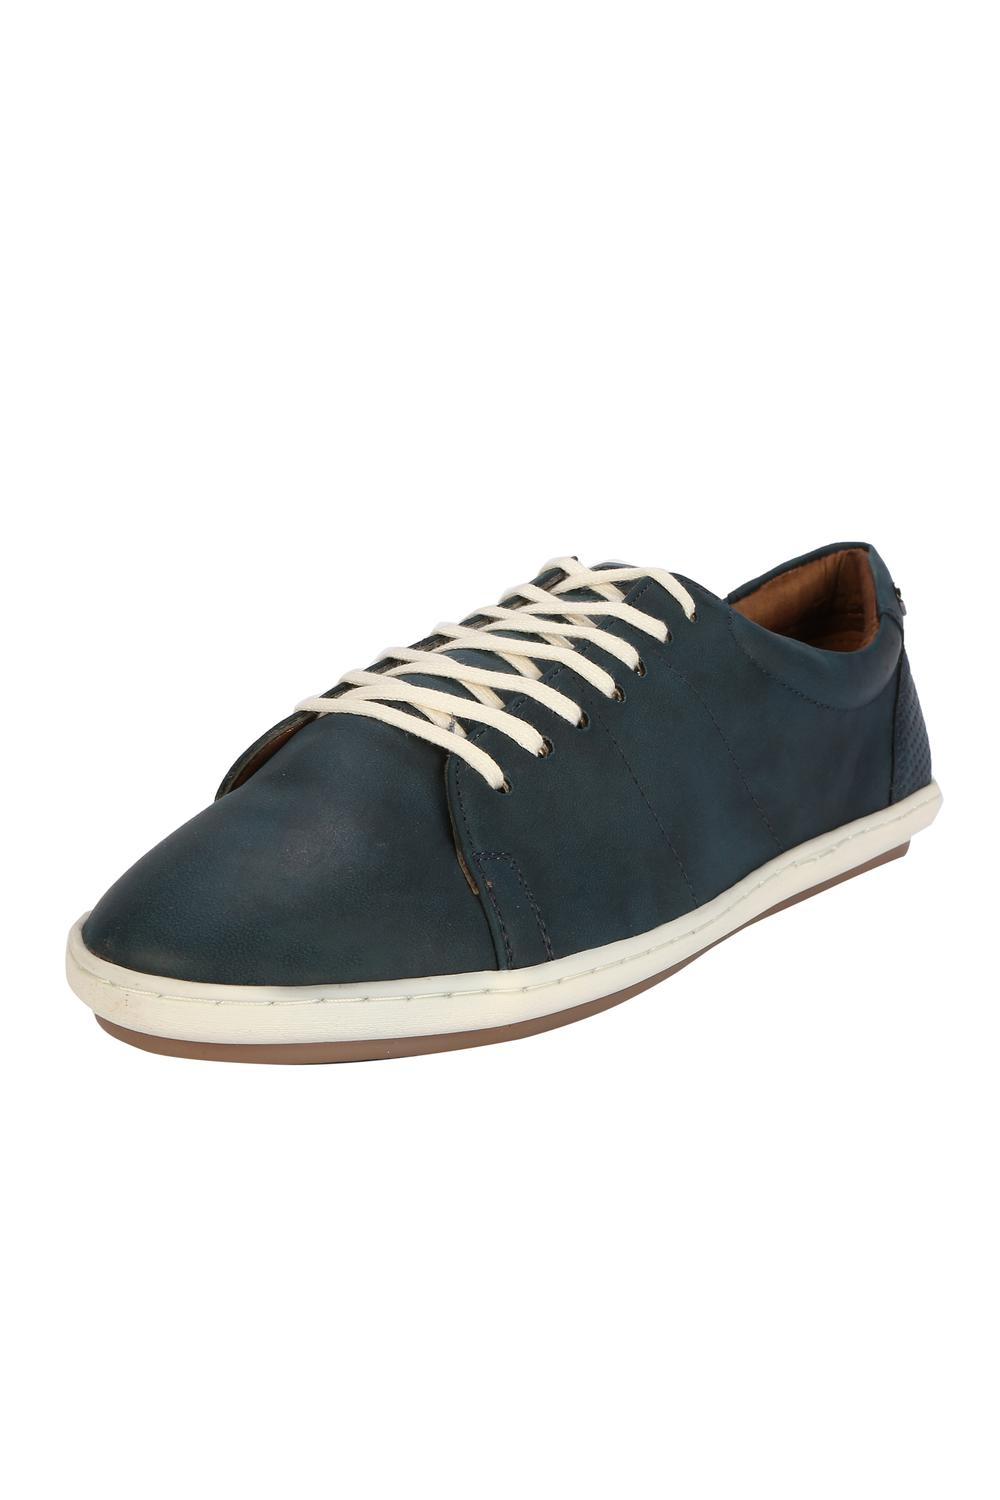 f86b8c7f7b Allen Solly Footwear, Allen Solly Blue Casual Shoes for Men at Allensolly .com